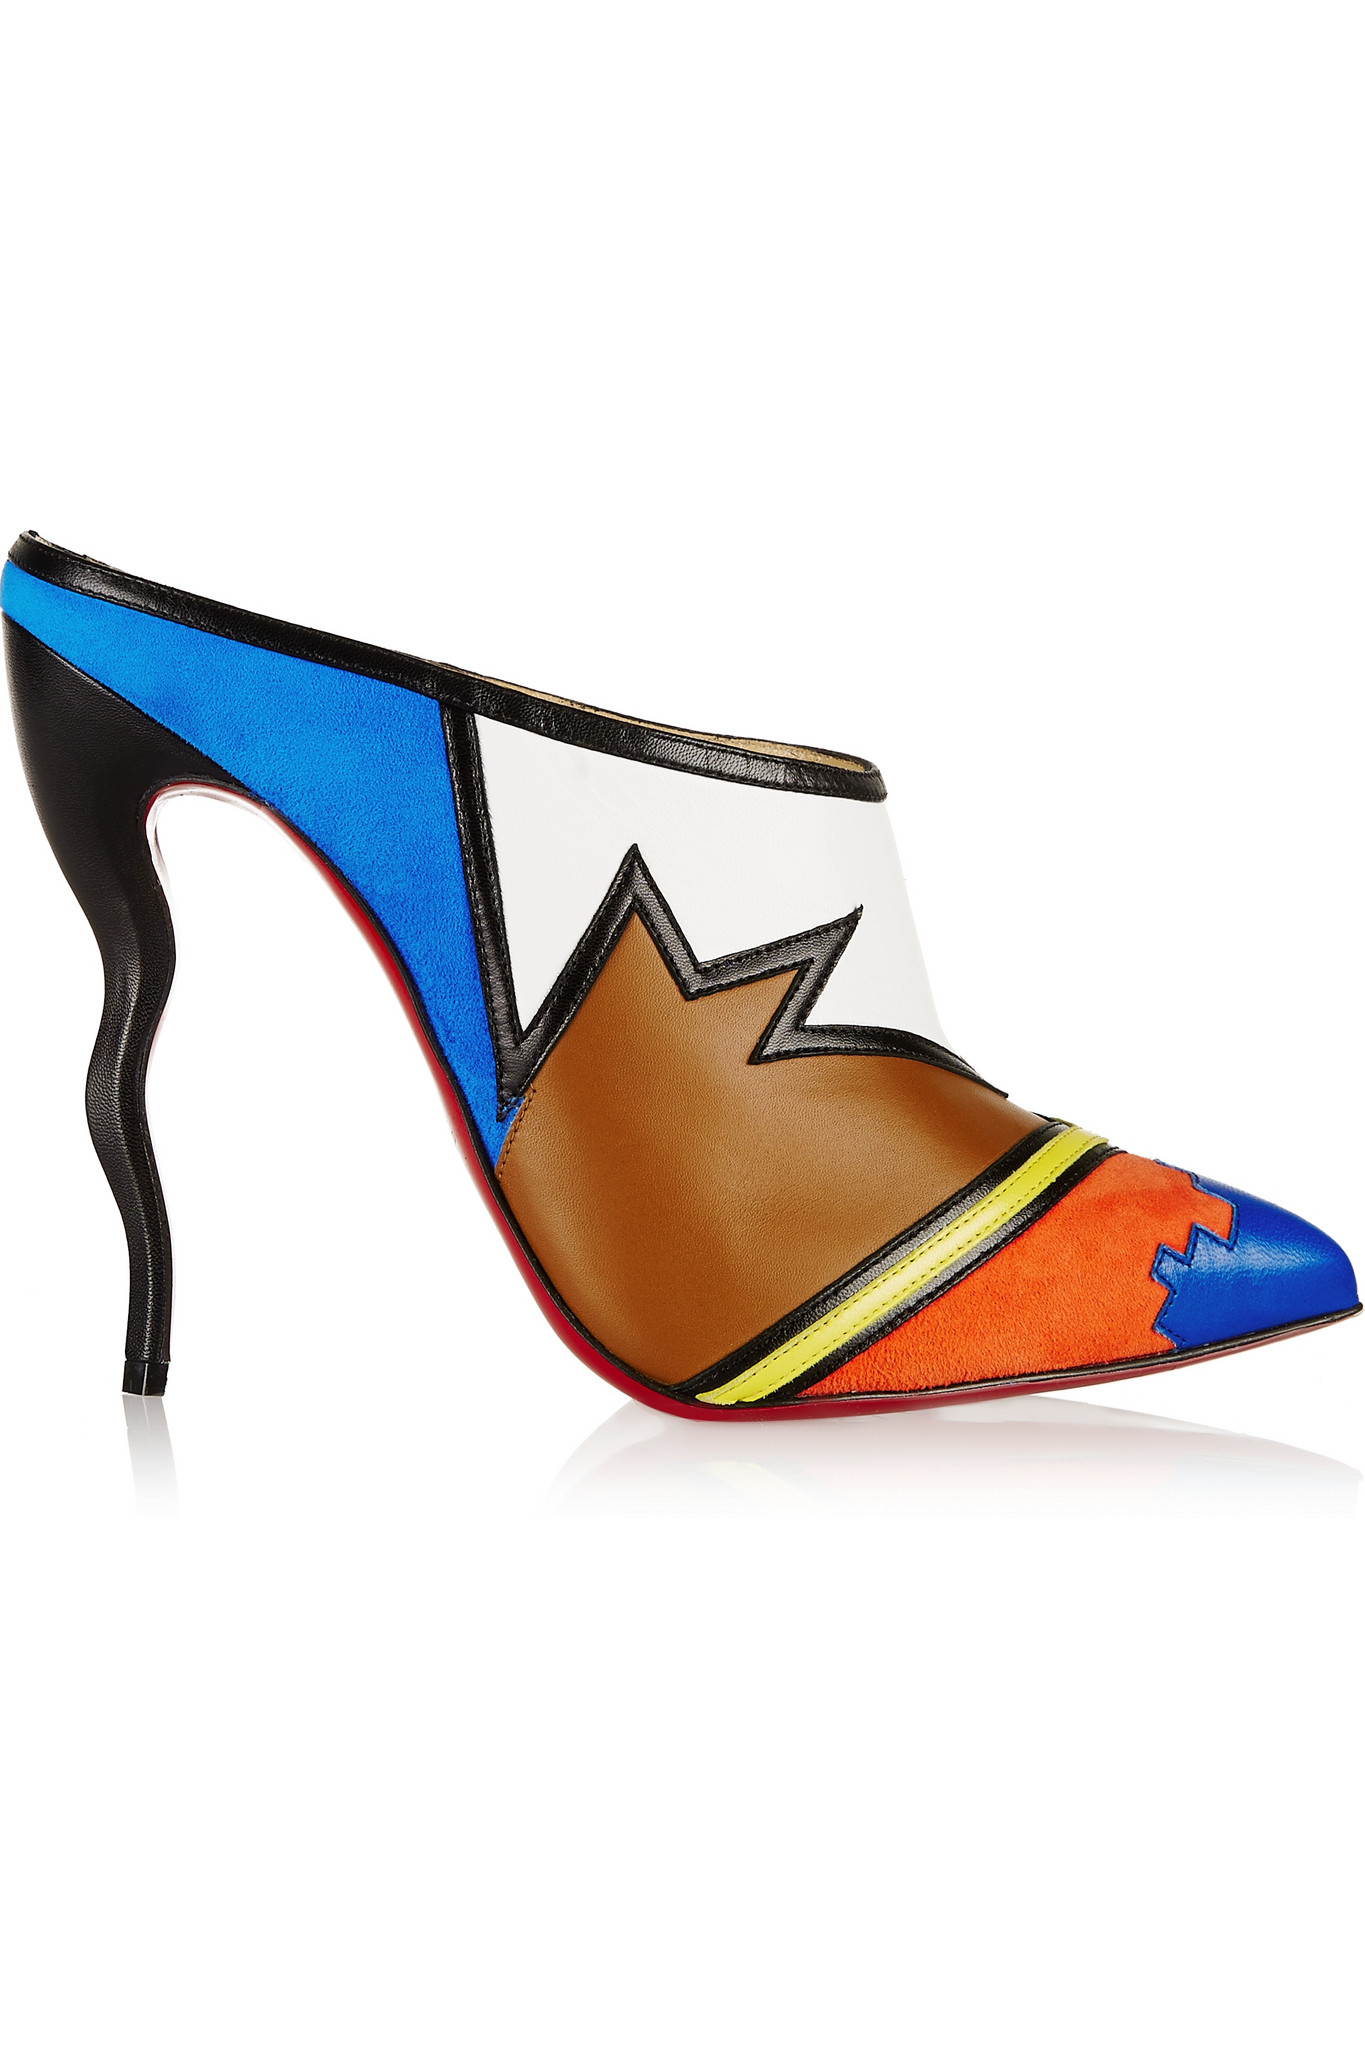 ecc68afd1b52 Lyst - Christian Louboutin Vagachina 120 Leather And Suede Mules in Blue